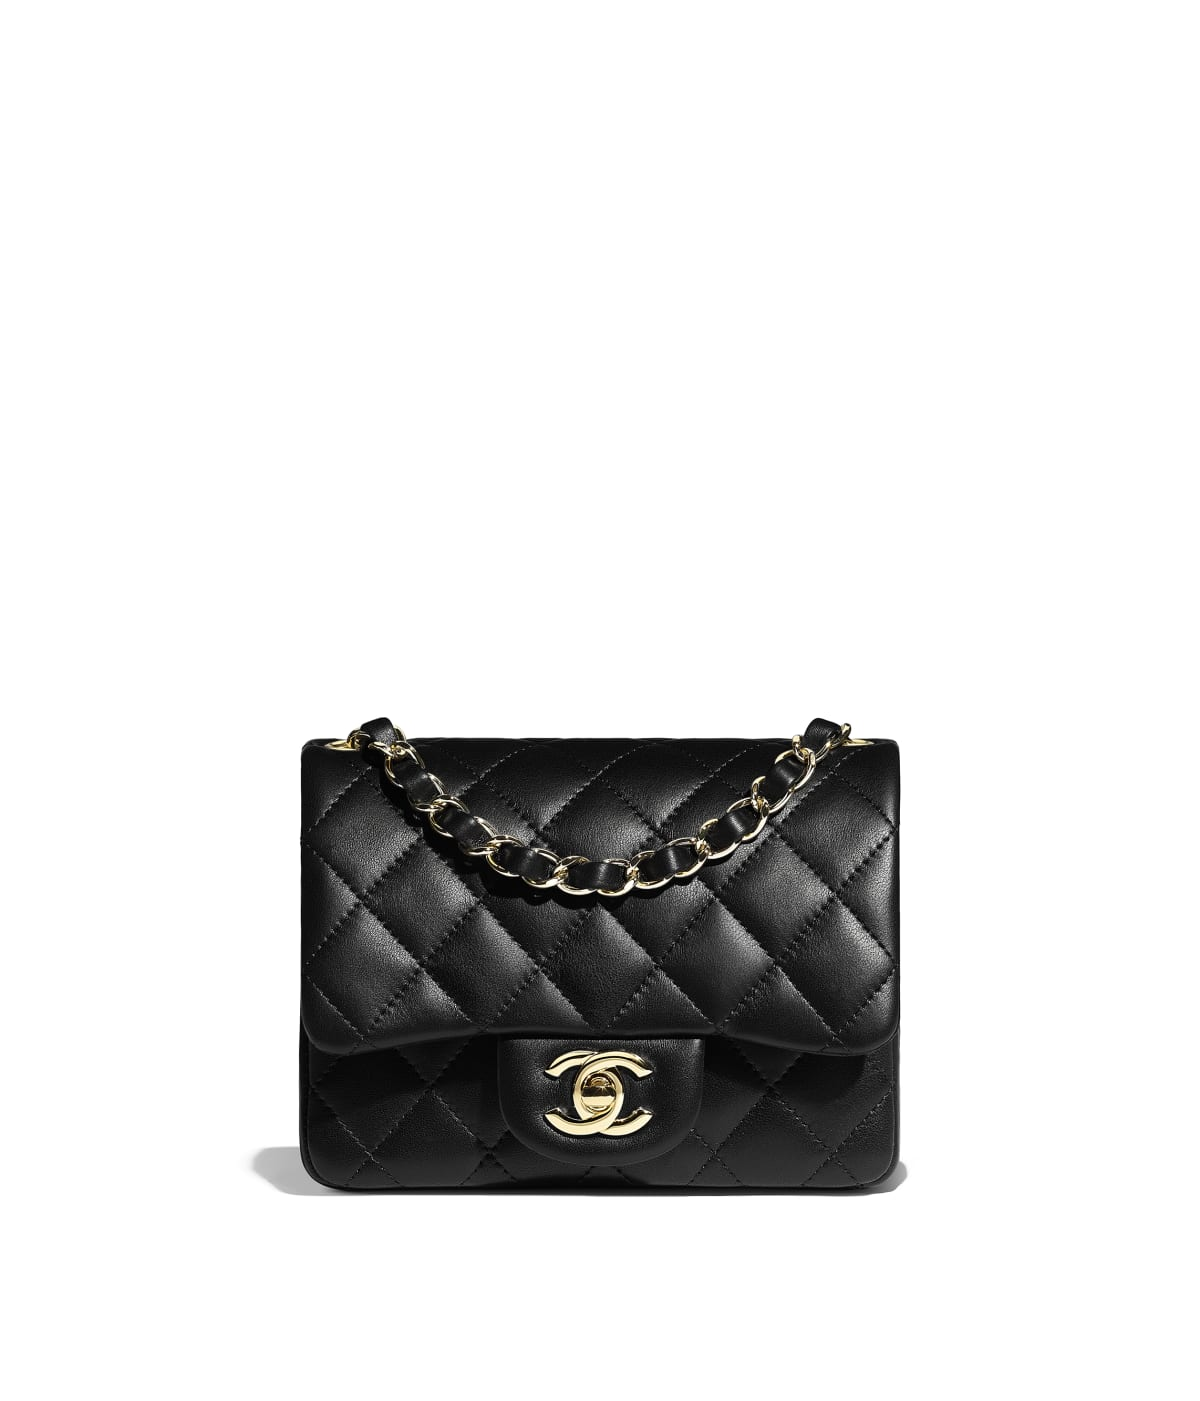 24adfd1521b0 Mini Flap Bag, lambskin, black - CHANEL